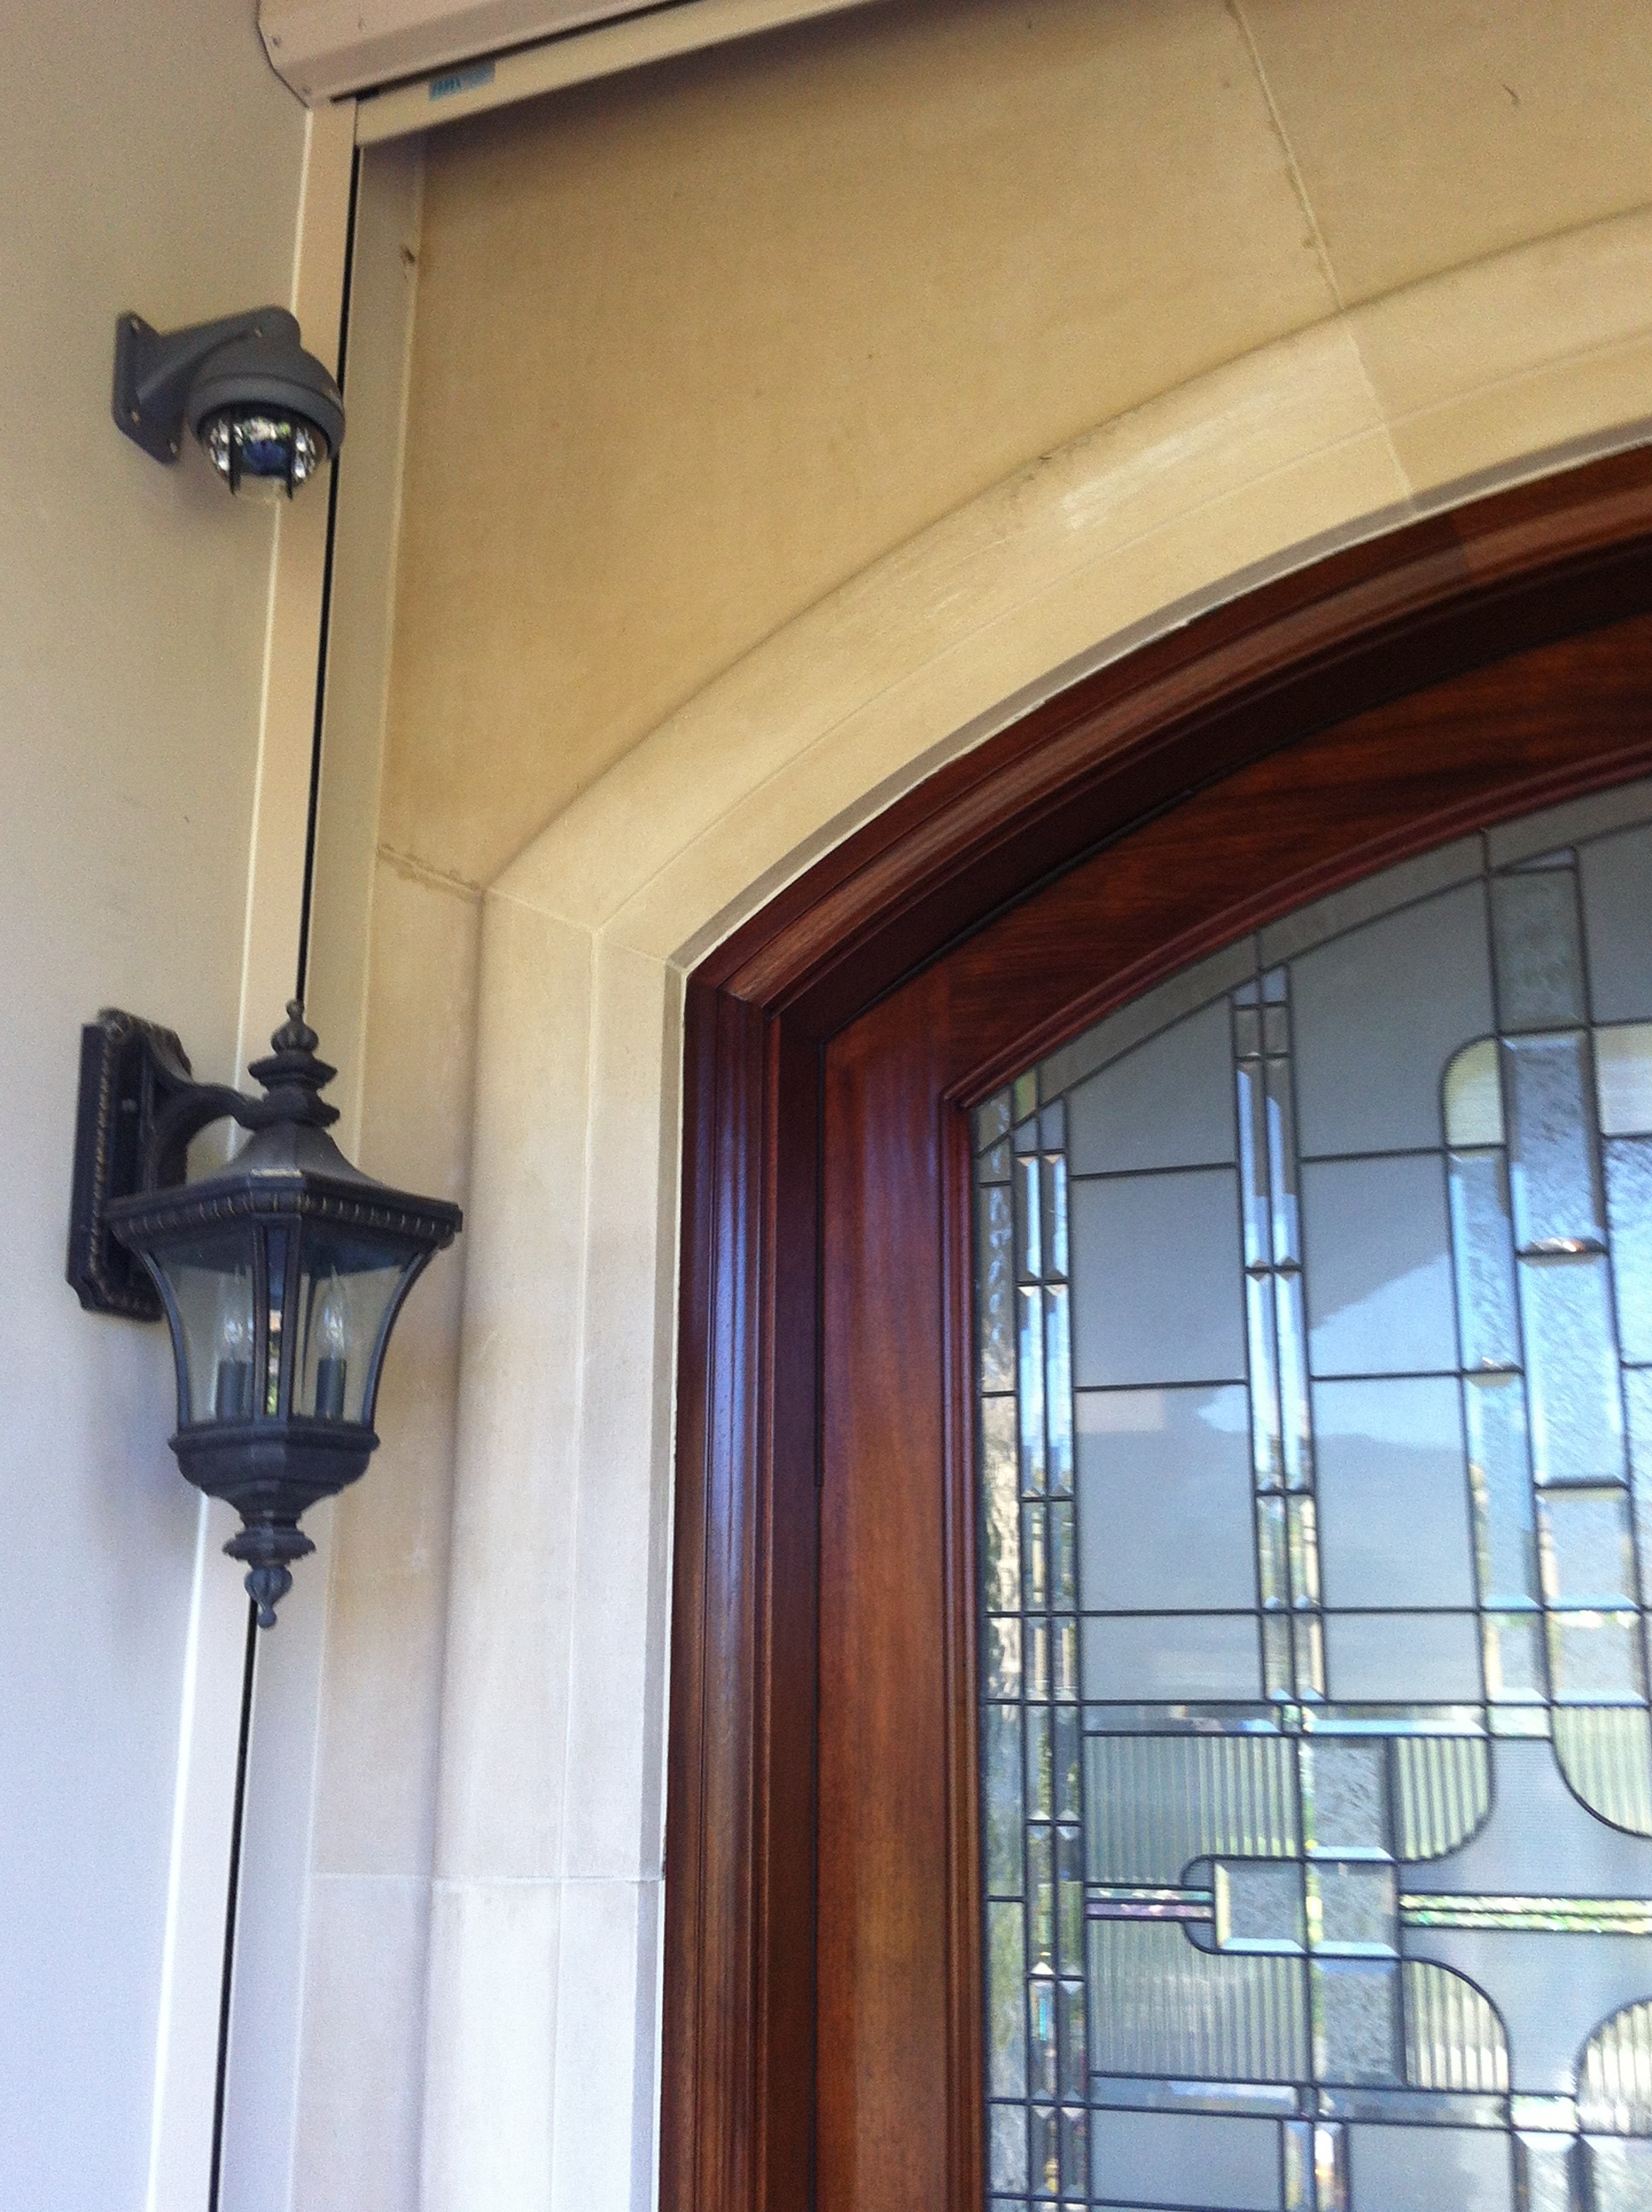 front door security cameraPan Tilt Zoom PTZ Security Surveillance Camera in Saratoga CA